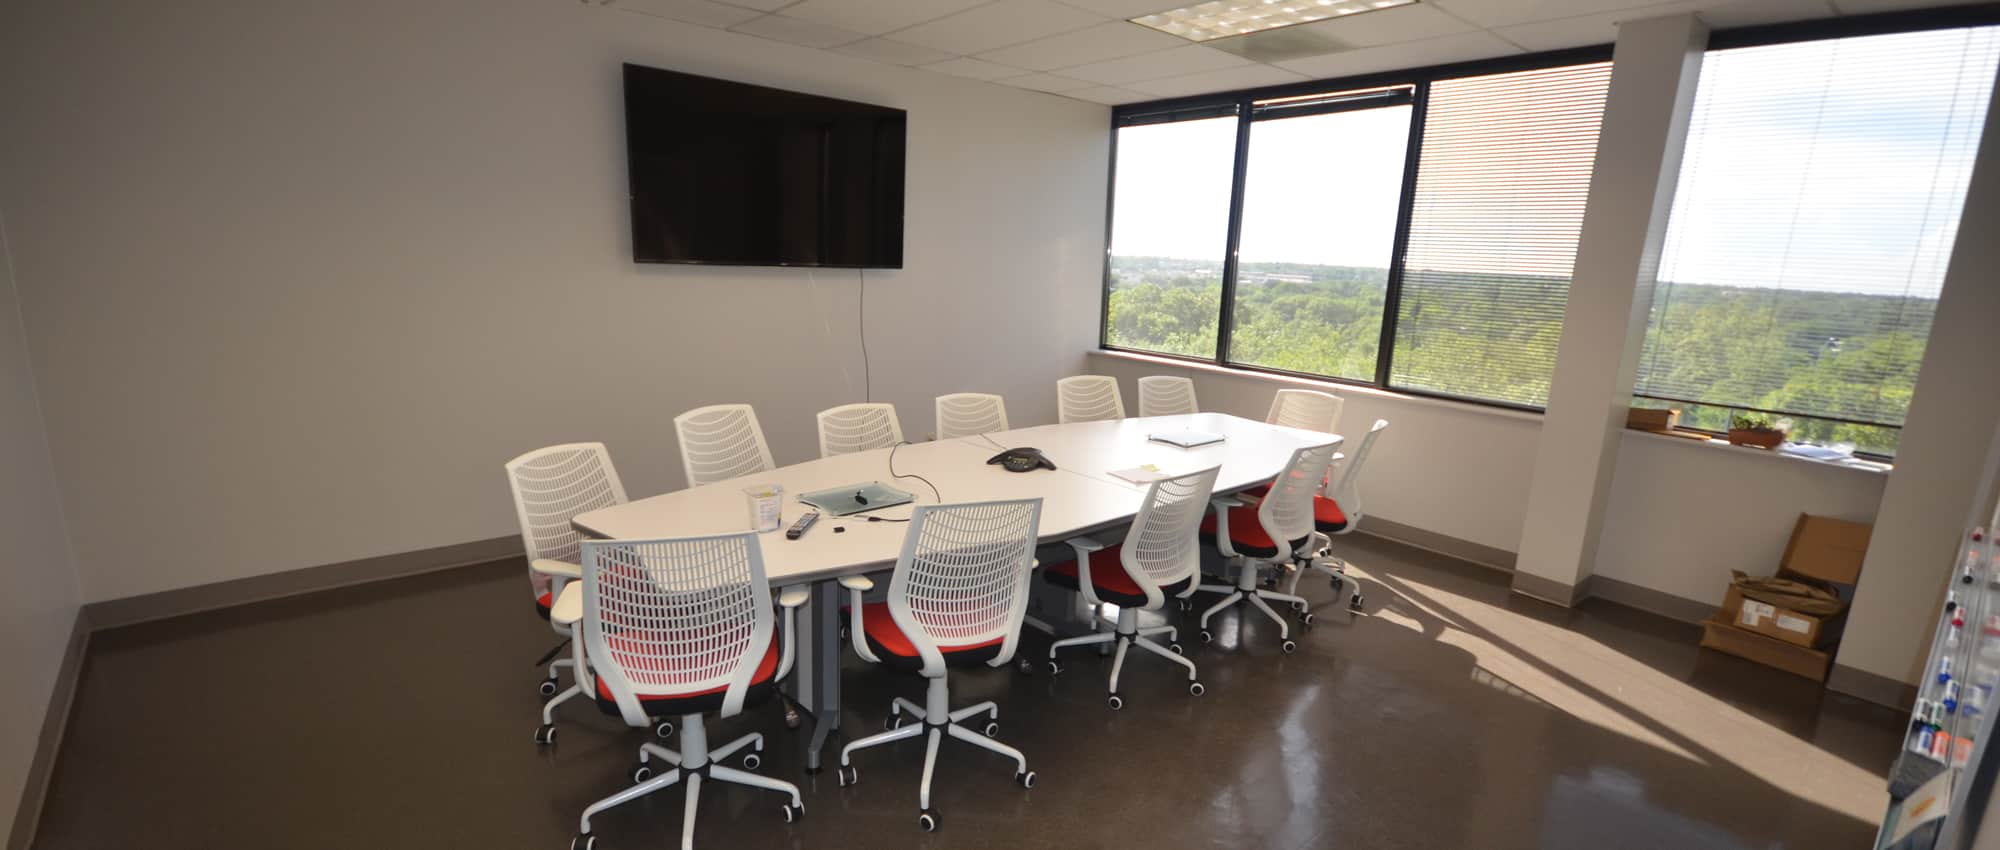 Sublease: Austin Oaks Travis Building Conference Room   3520 Executive Center Drive in Austin, Texas